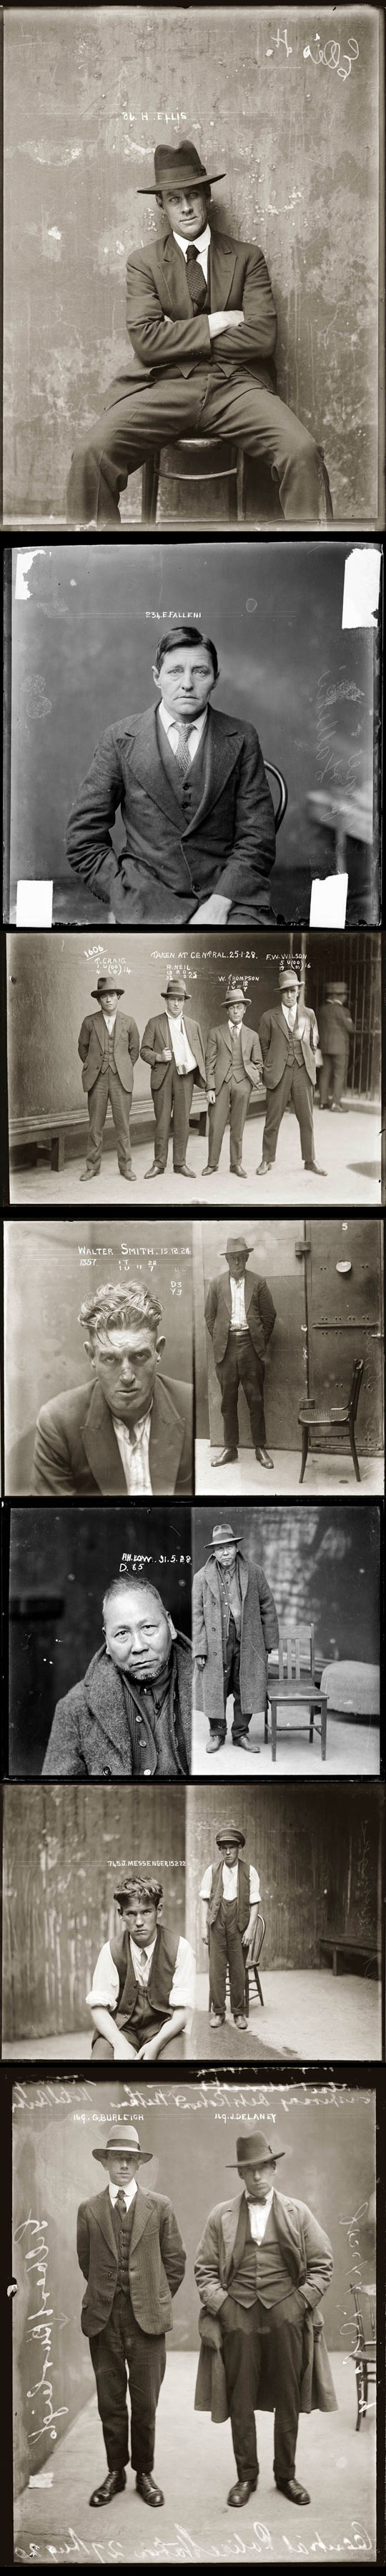 Police mugshots in the 1920s (2)